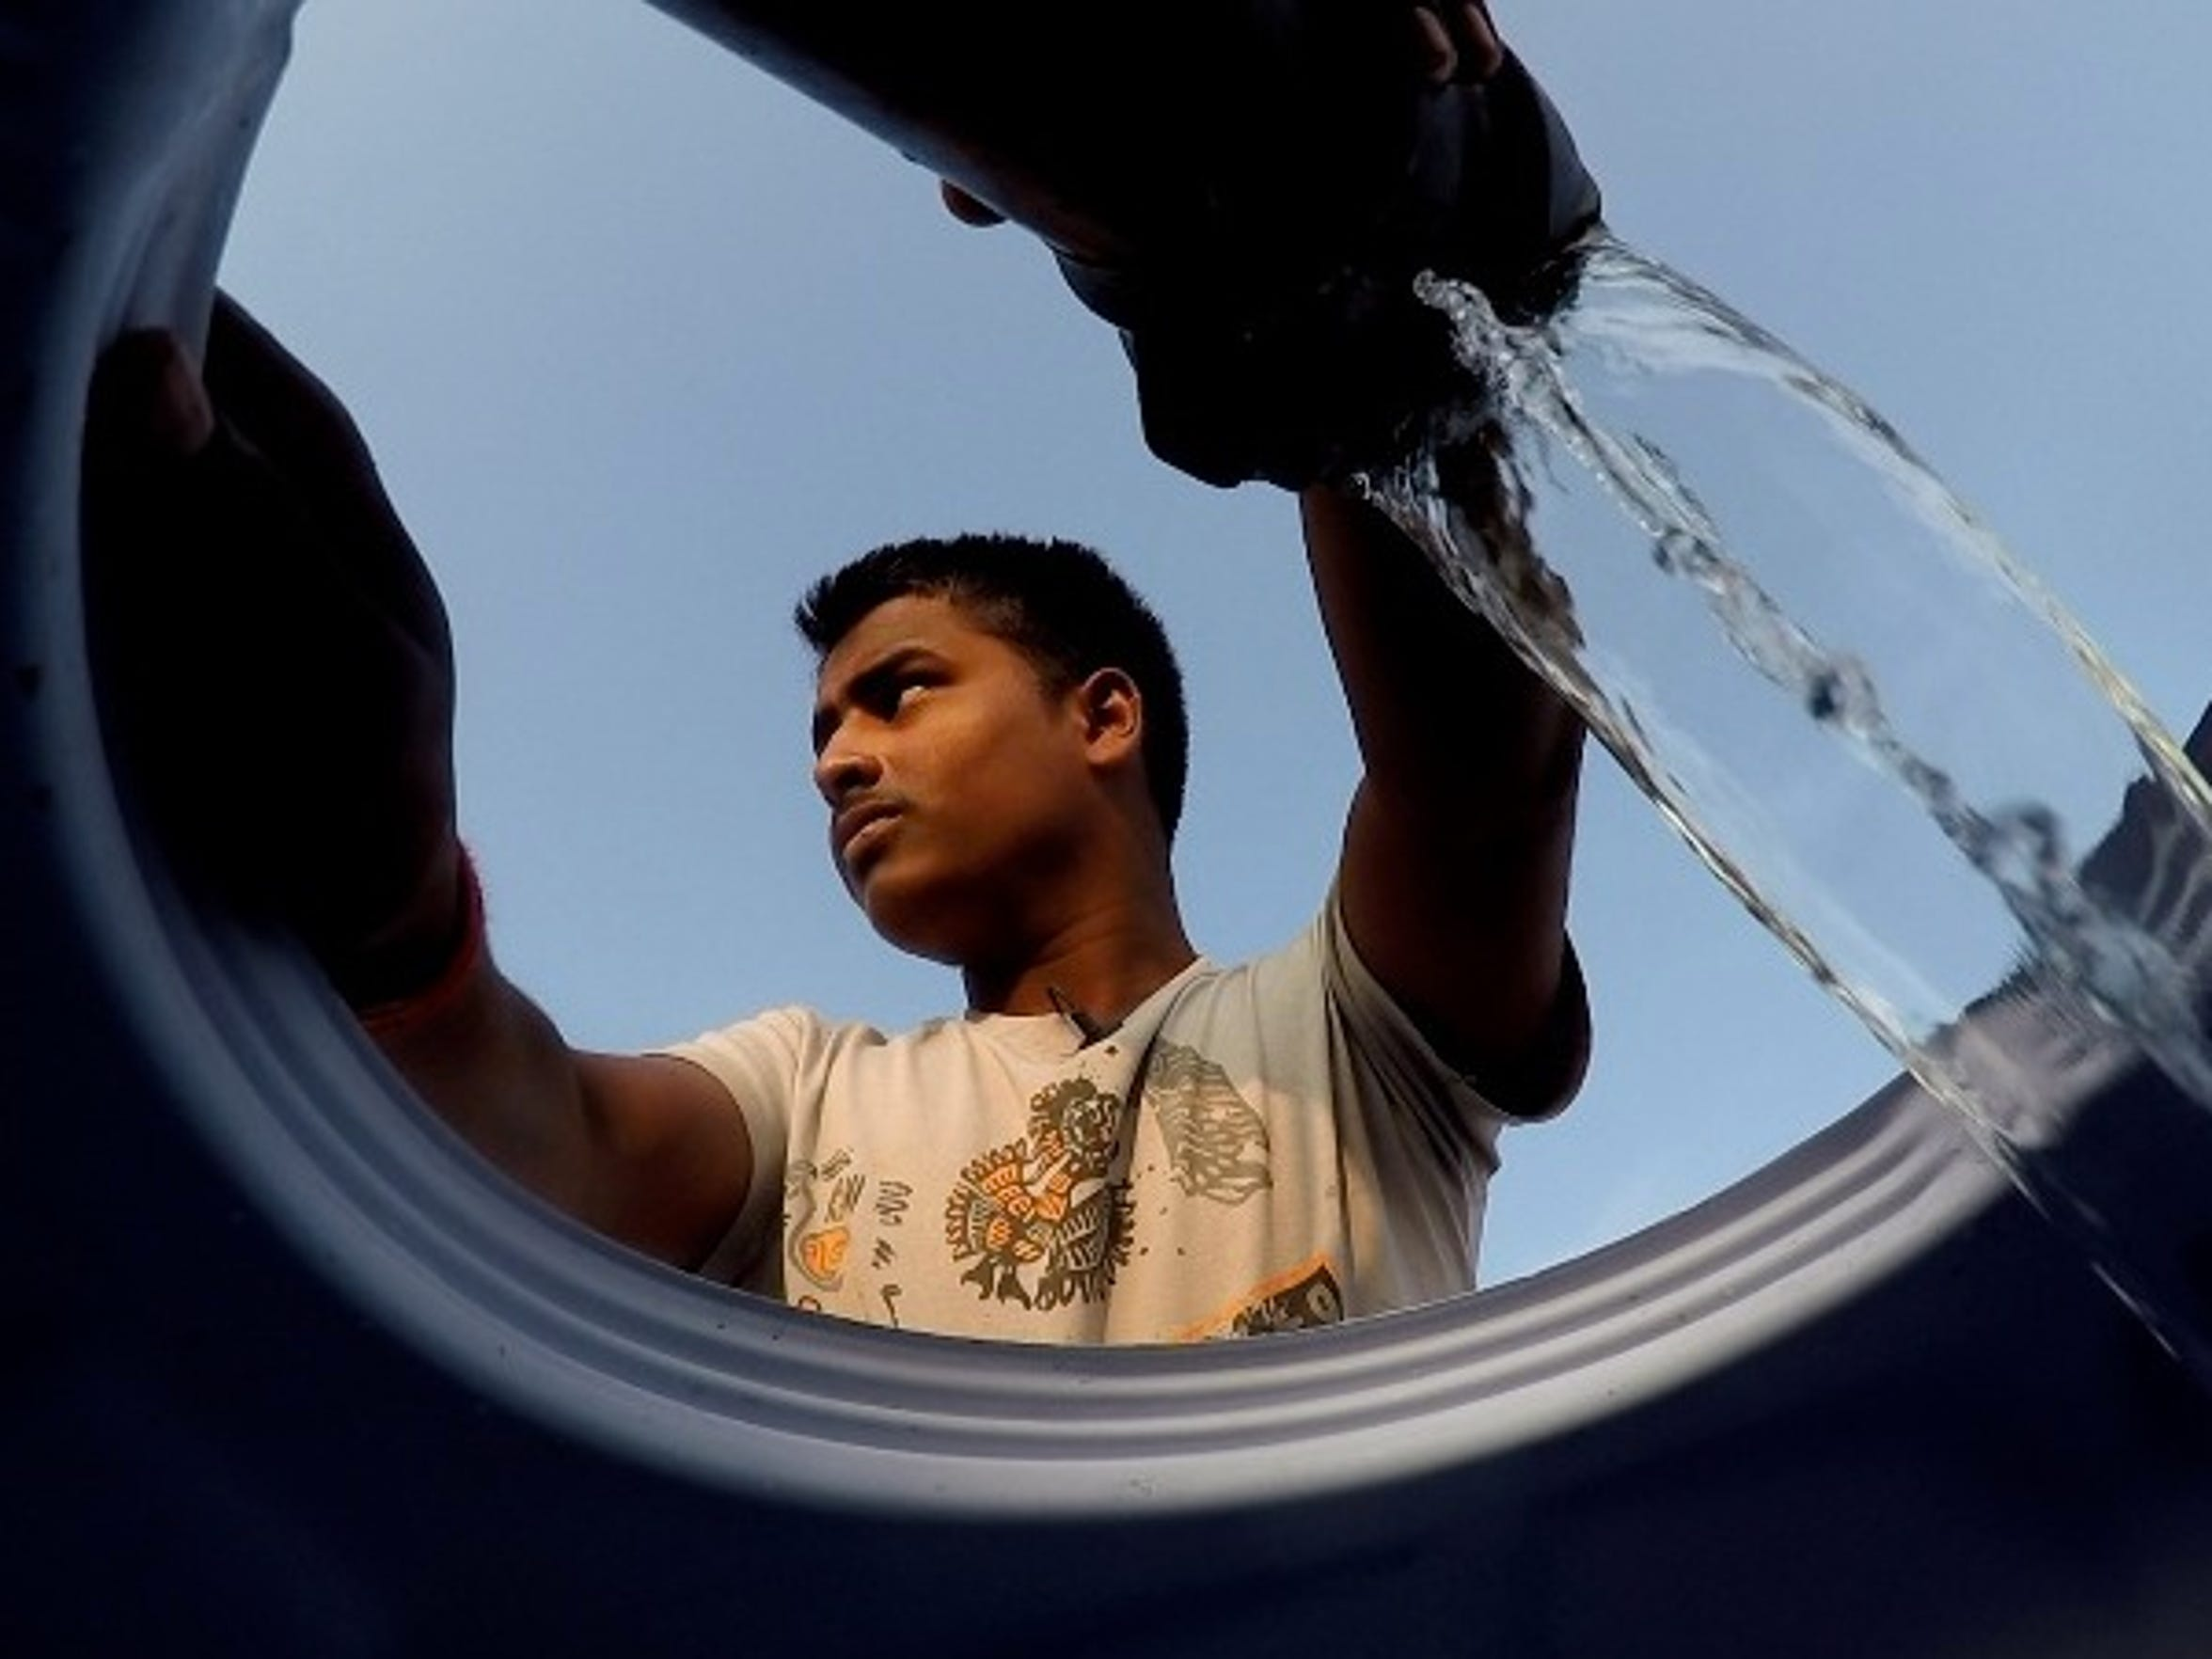 Mukindra Suryawanshi, 22, fills his family's water tank in Maharashtra state in western India. He and his relatives carry the tank on an ox cart and fill it up at another farmer's irrigation well. The water, drawn from about 850 feet underground, is used for washing, cooking and bathing by an extended family of 22 people.